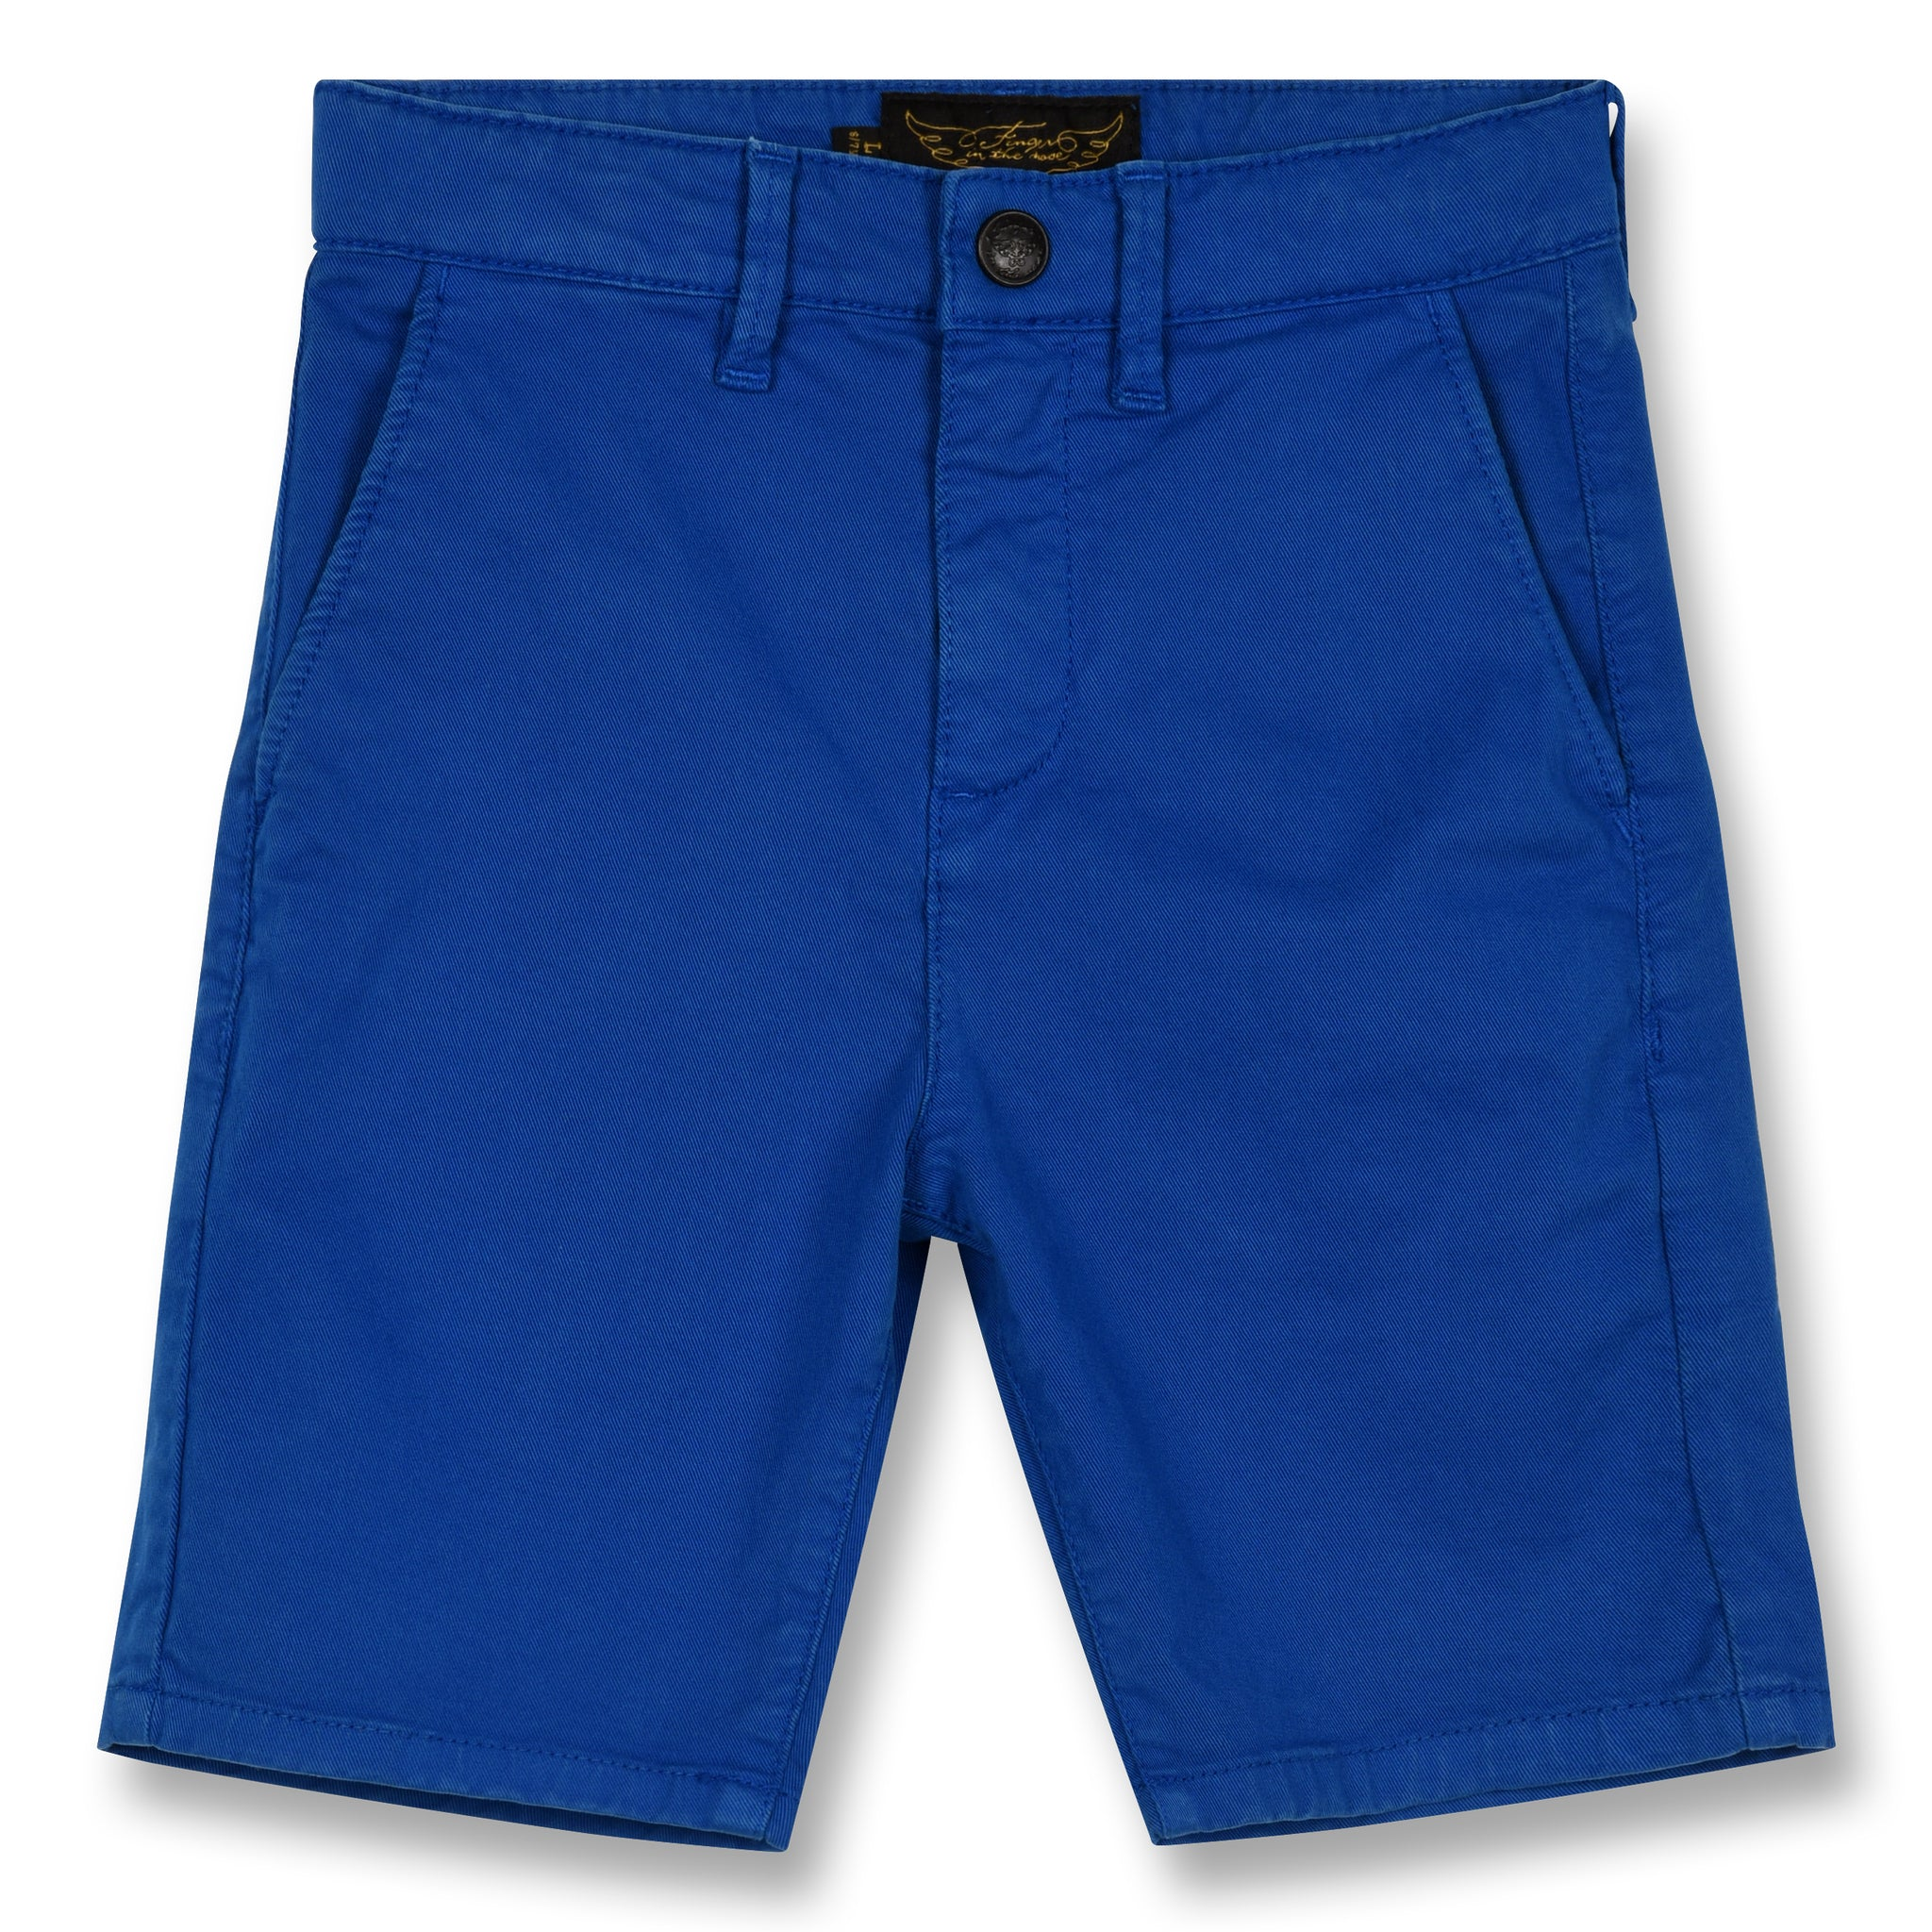 SURFER Work Blue - Chino Fit Bermuda Shorts 1